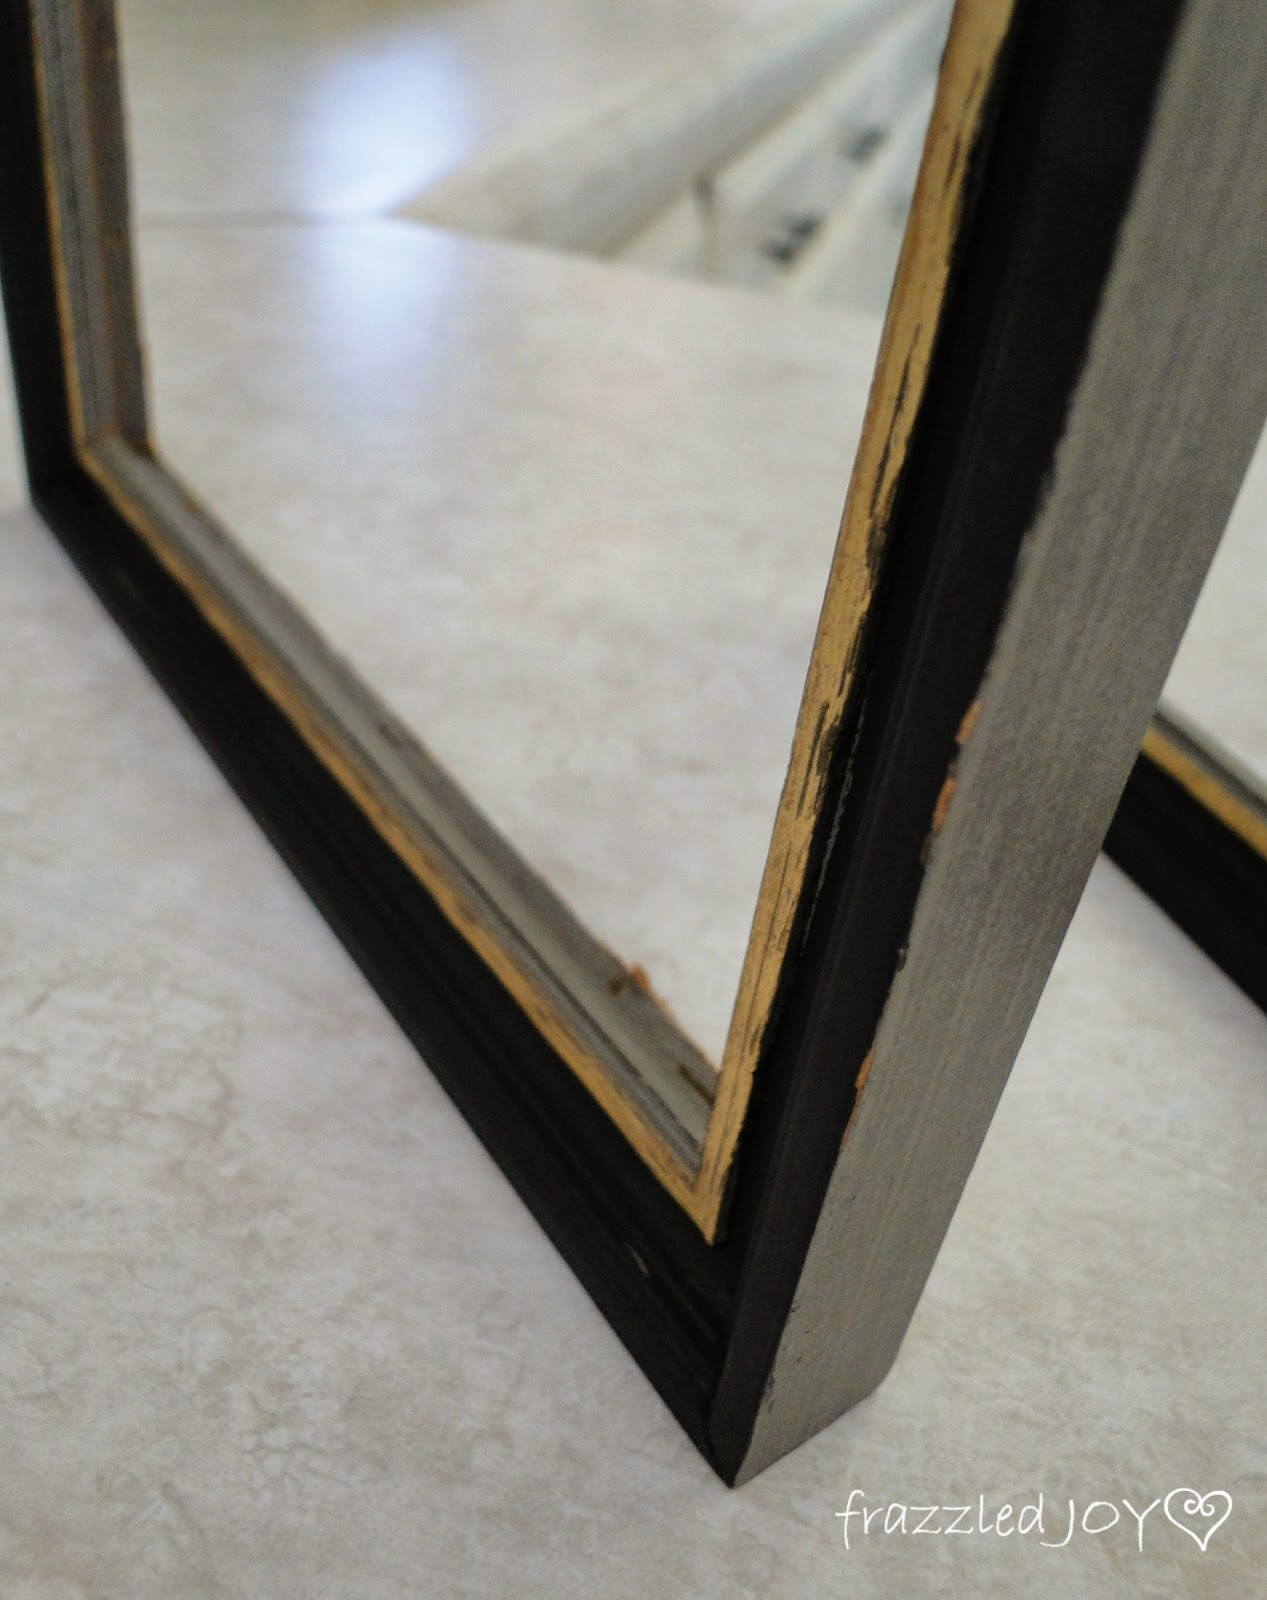 frame updated with black paint and rub n buff